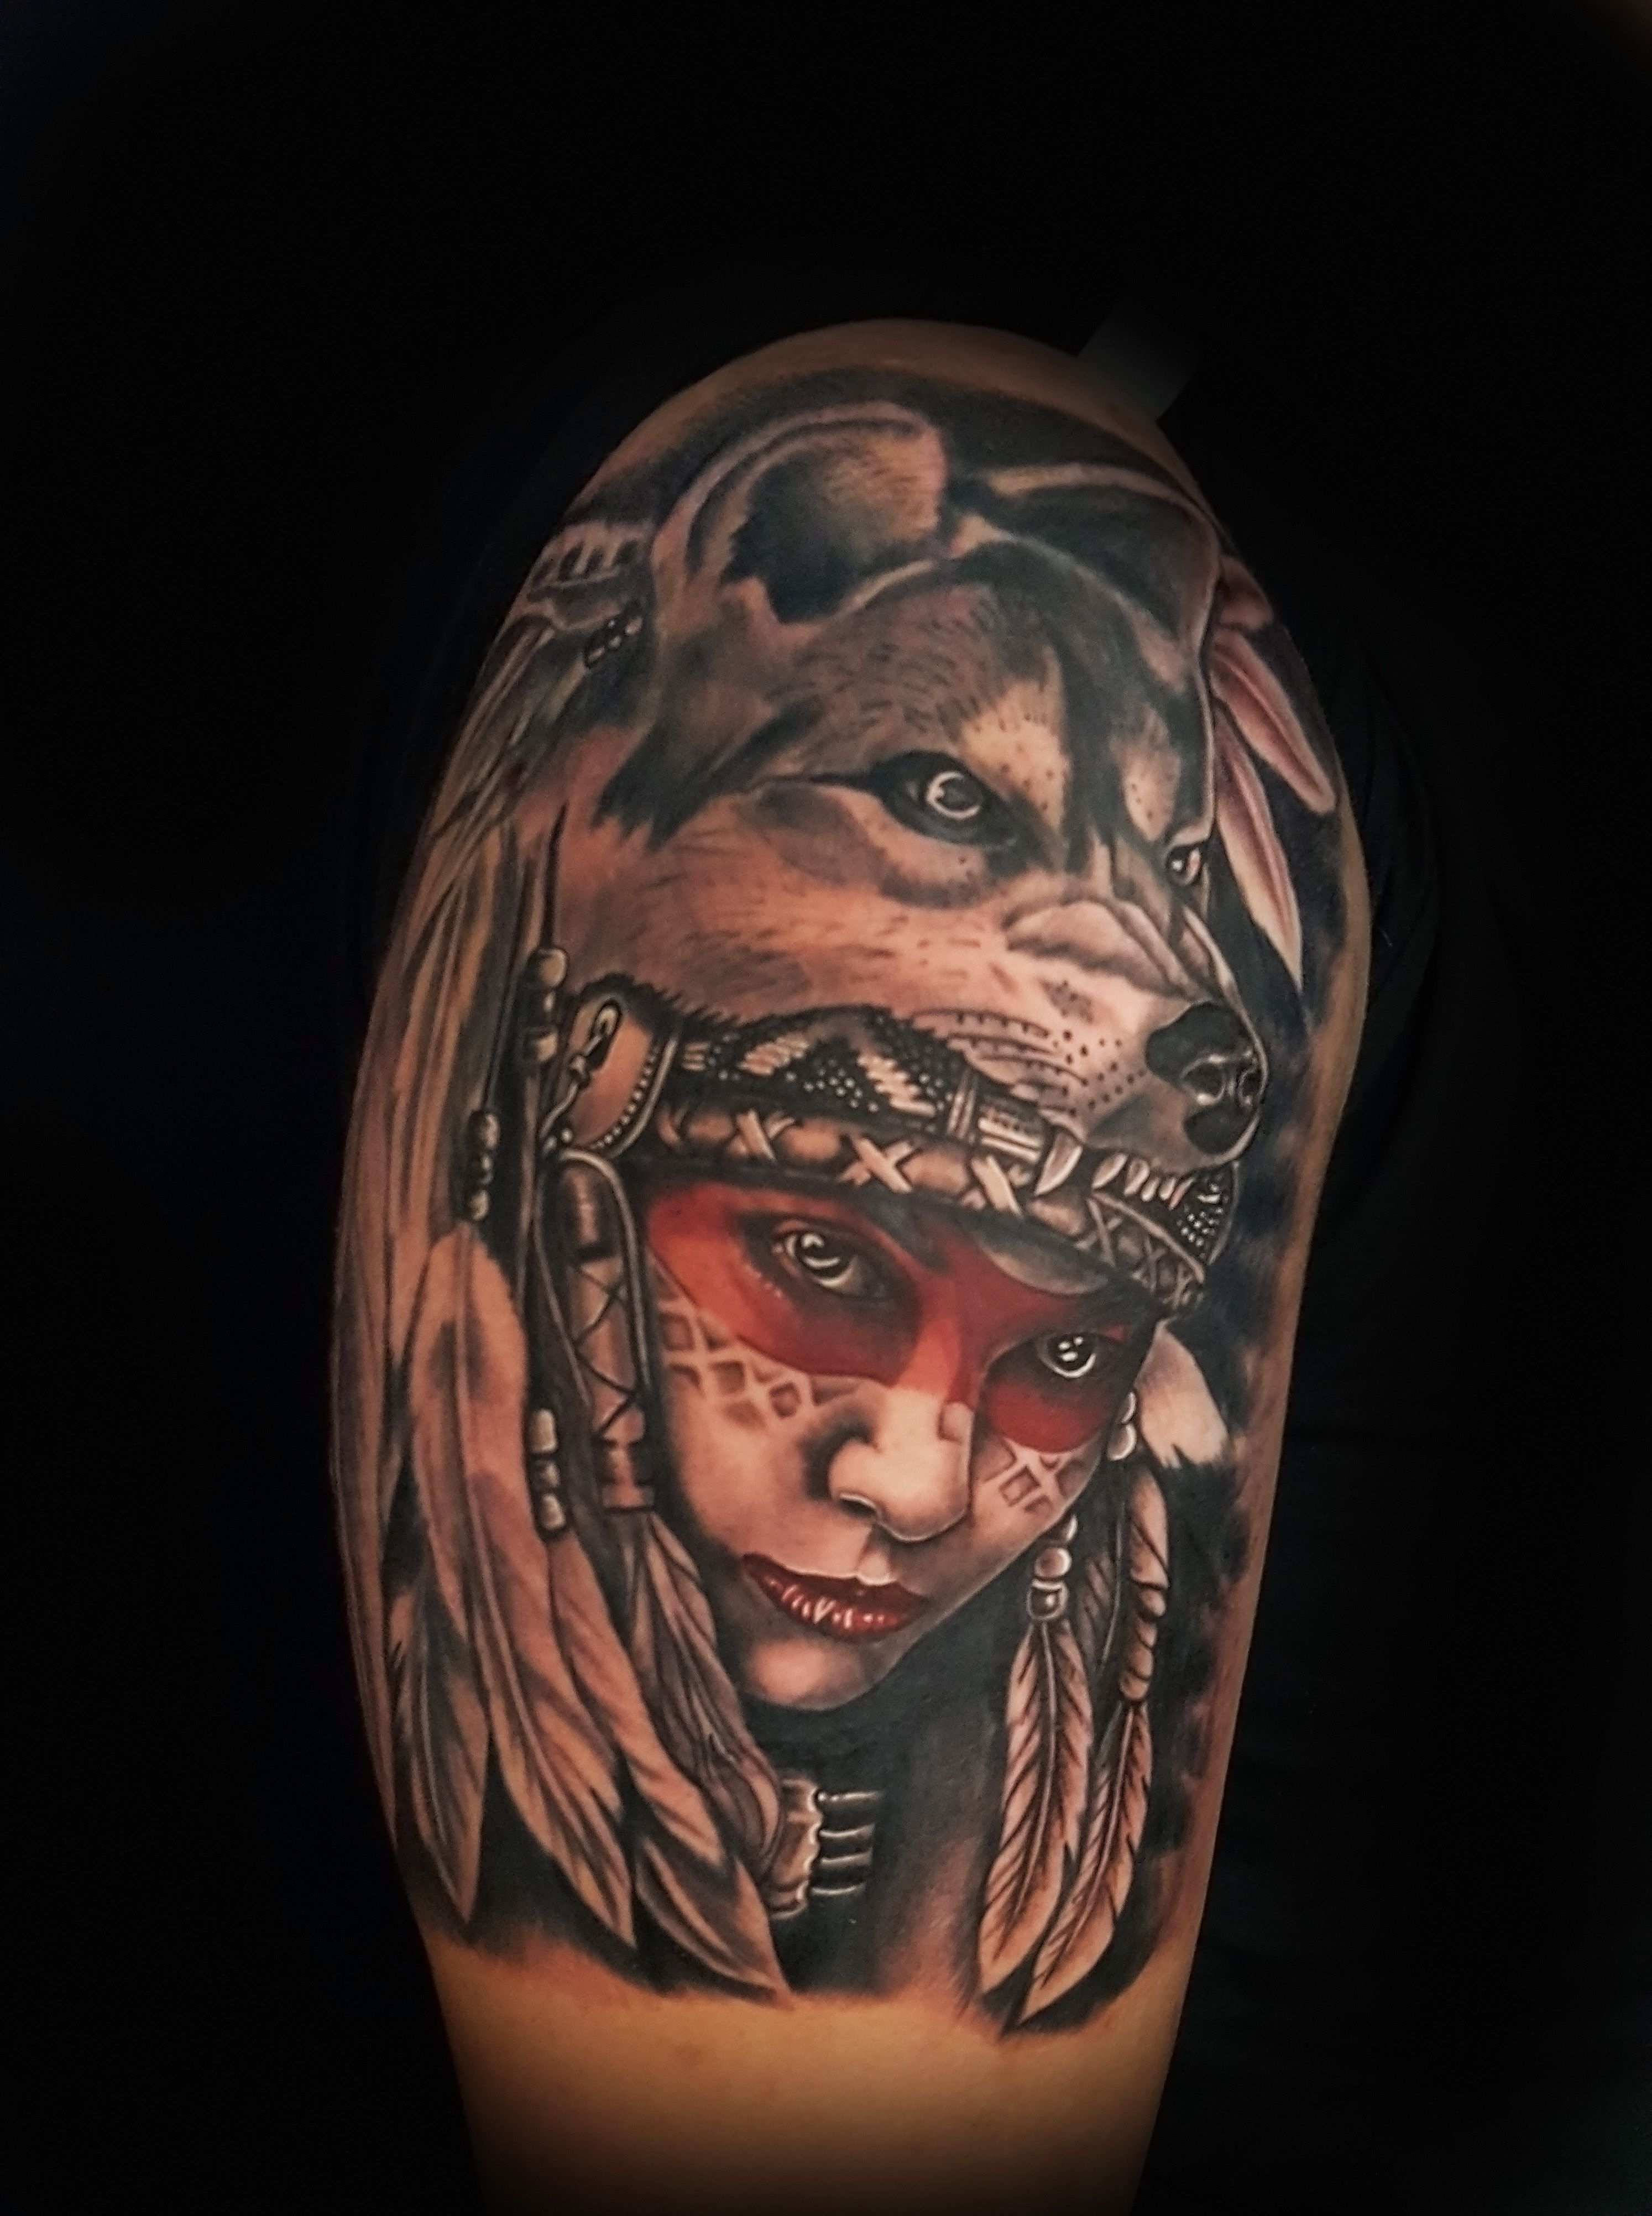 Indian Girl Done By Mike Evans At Elite Skin Art Lawton Tattoo Oklahoma Tattoo Tattoos Sleeve Tattoos Oklahoma Tattoo